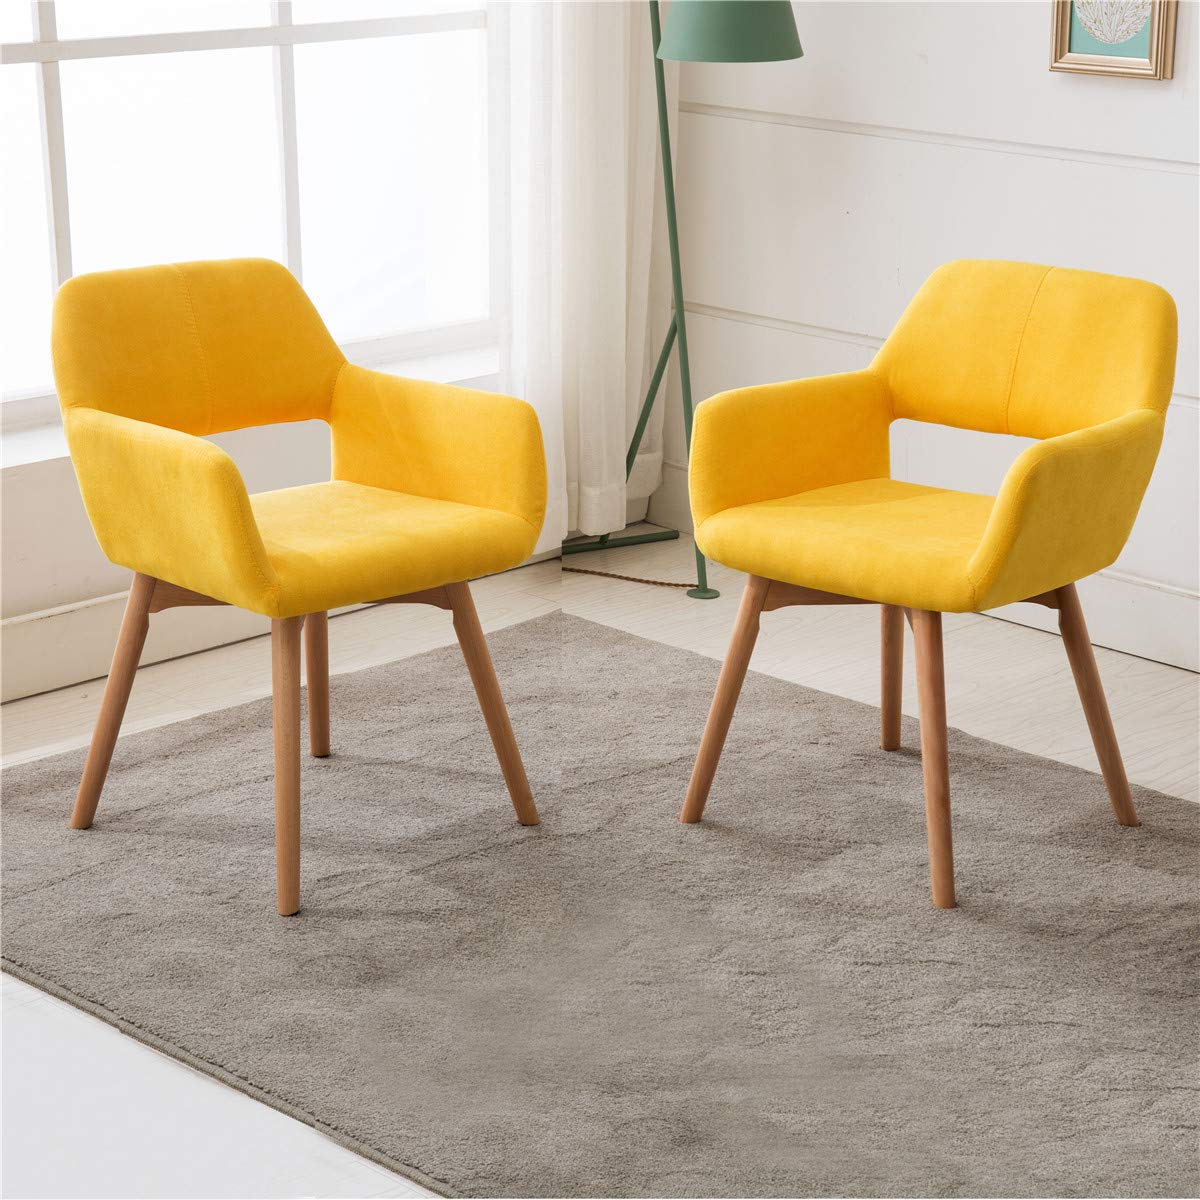 Lansen Furniture Set of 2 Modern Living Dining Room Accent Arm Chairs Club Guest with Solid Wood Legs Yellow